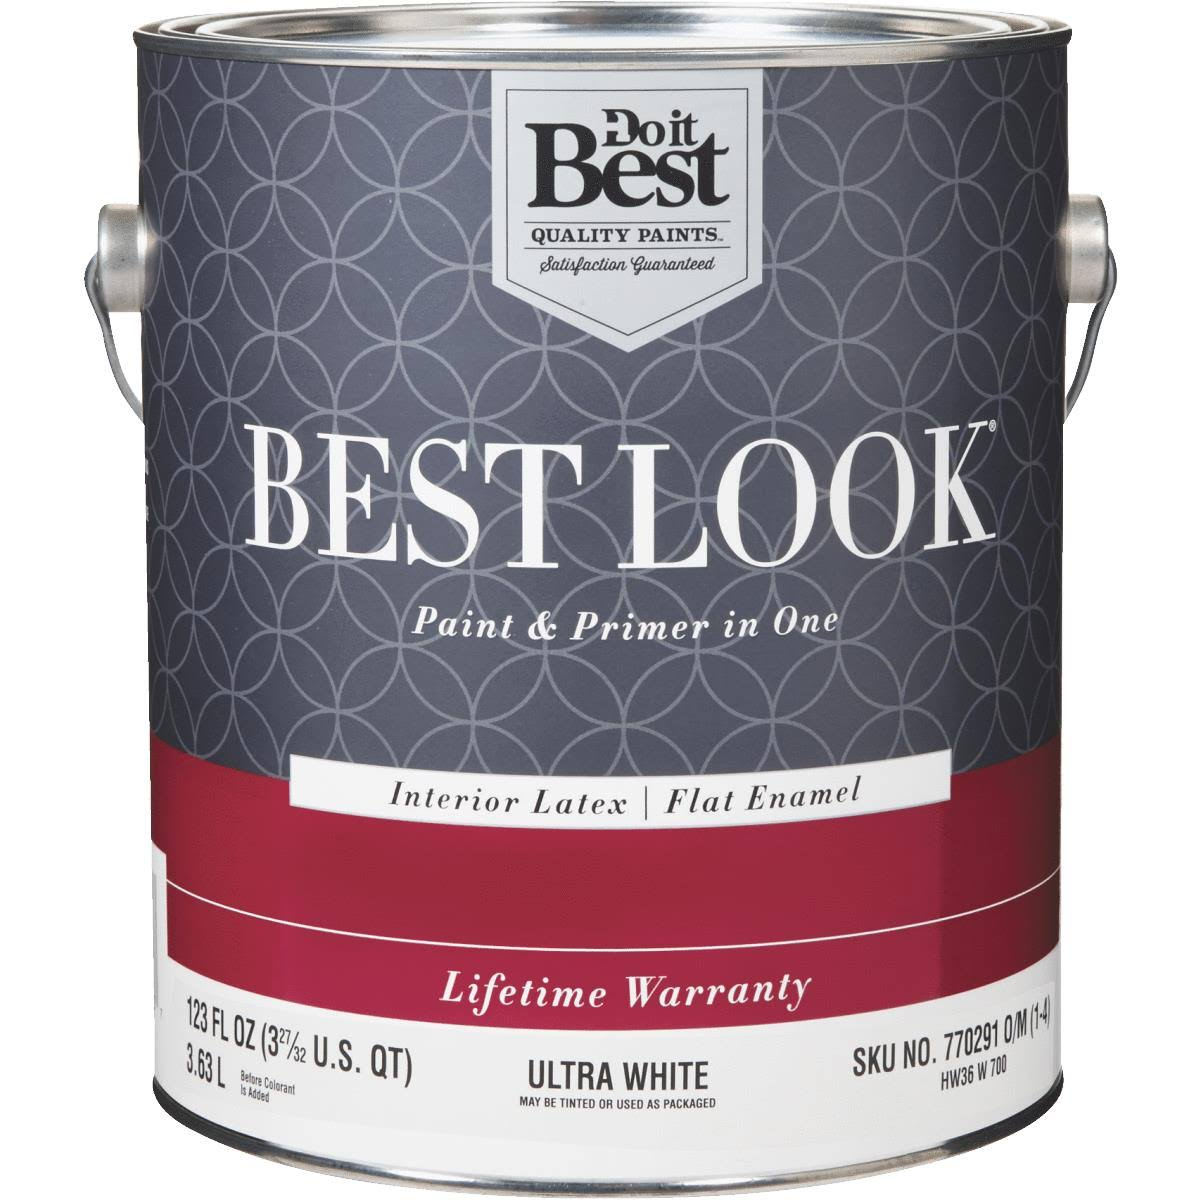 Do it Best Best Look Paint and Primer in One Flat Enamel Interior Wall Paint